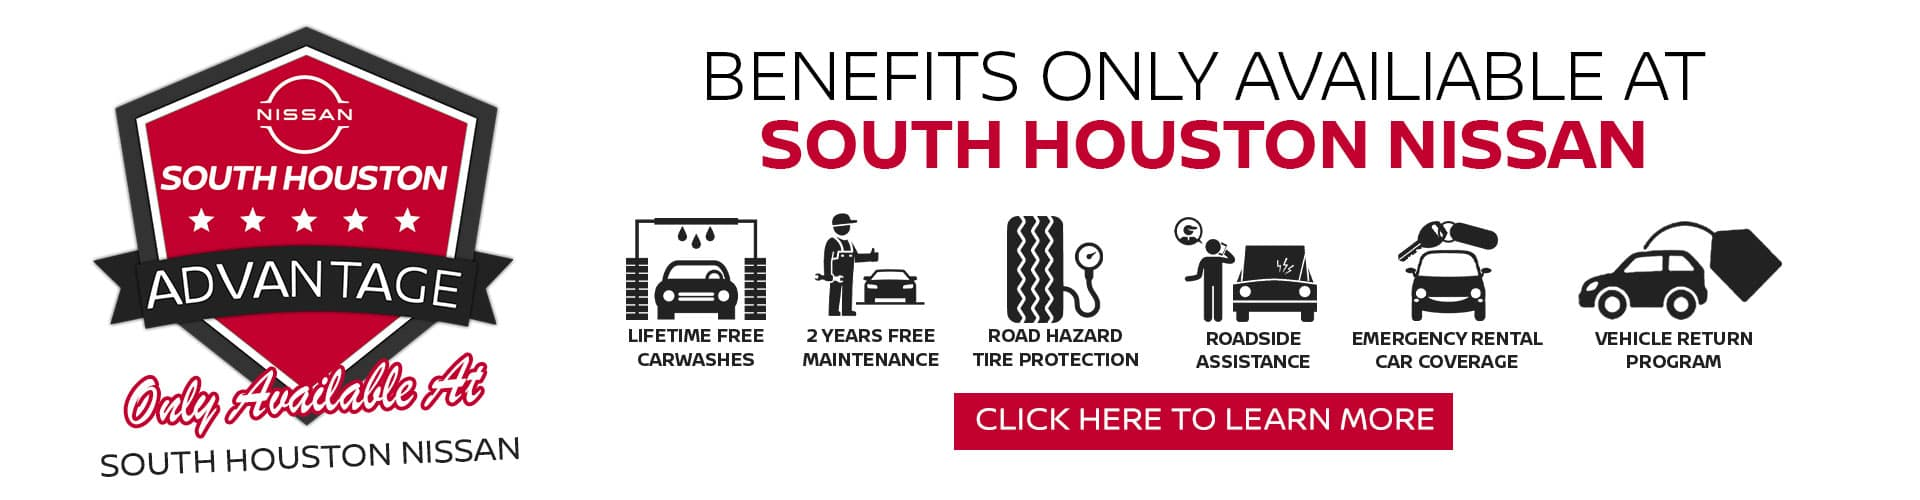 South Houston Advantage Program